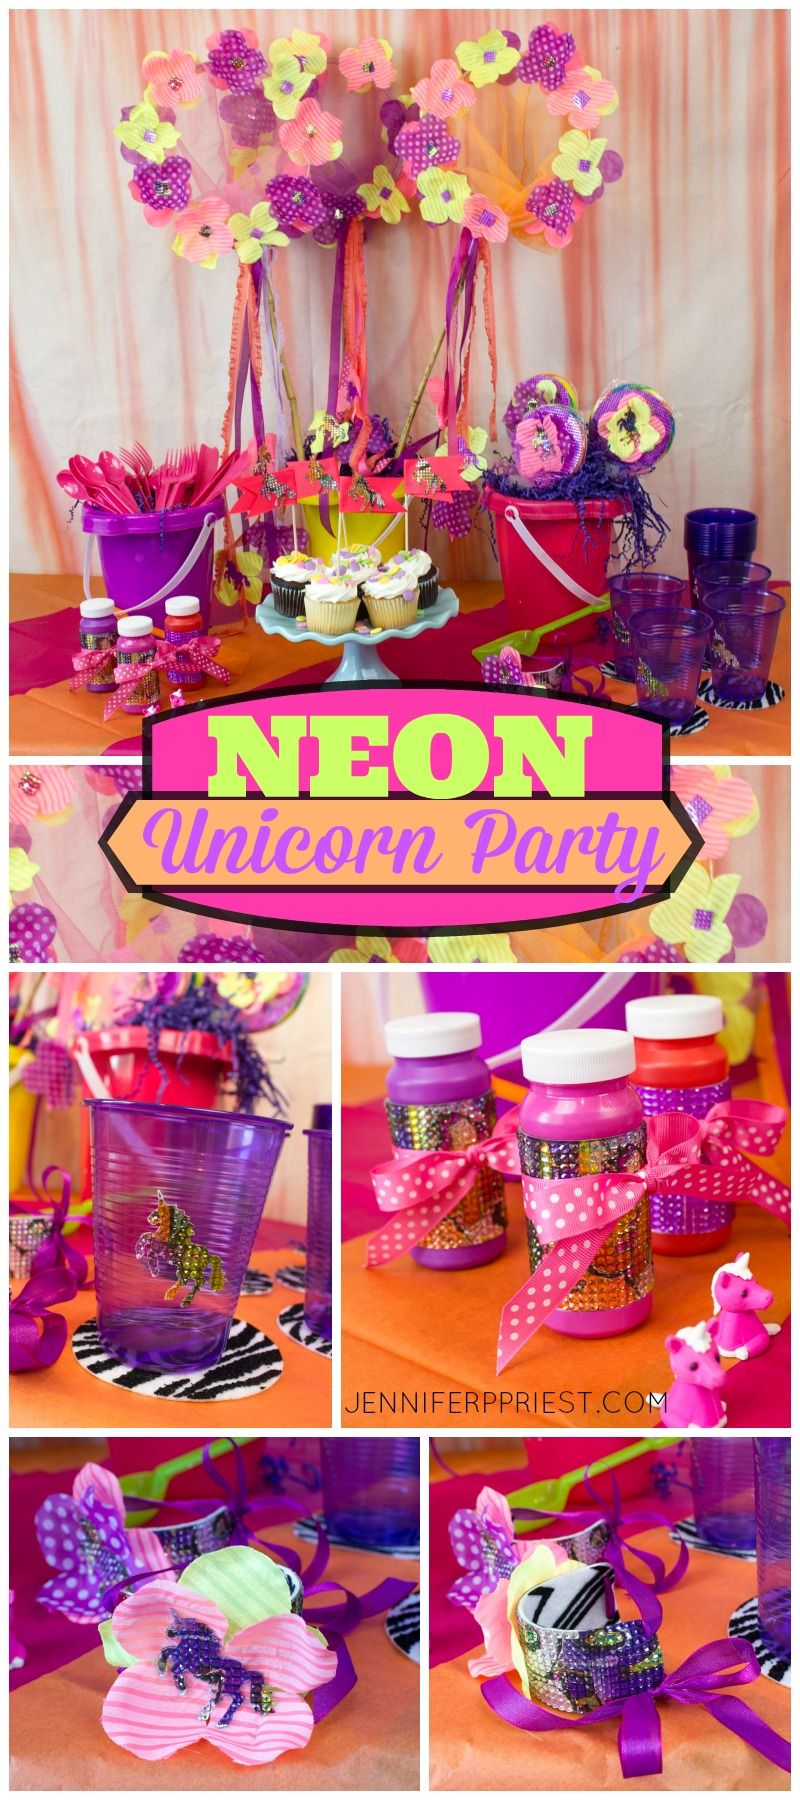 Neon Unicorn Birthday Party Decor - A Blog Hop | Featuring the